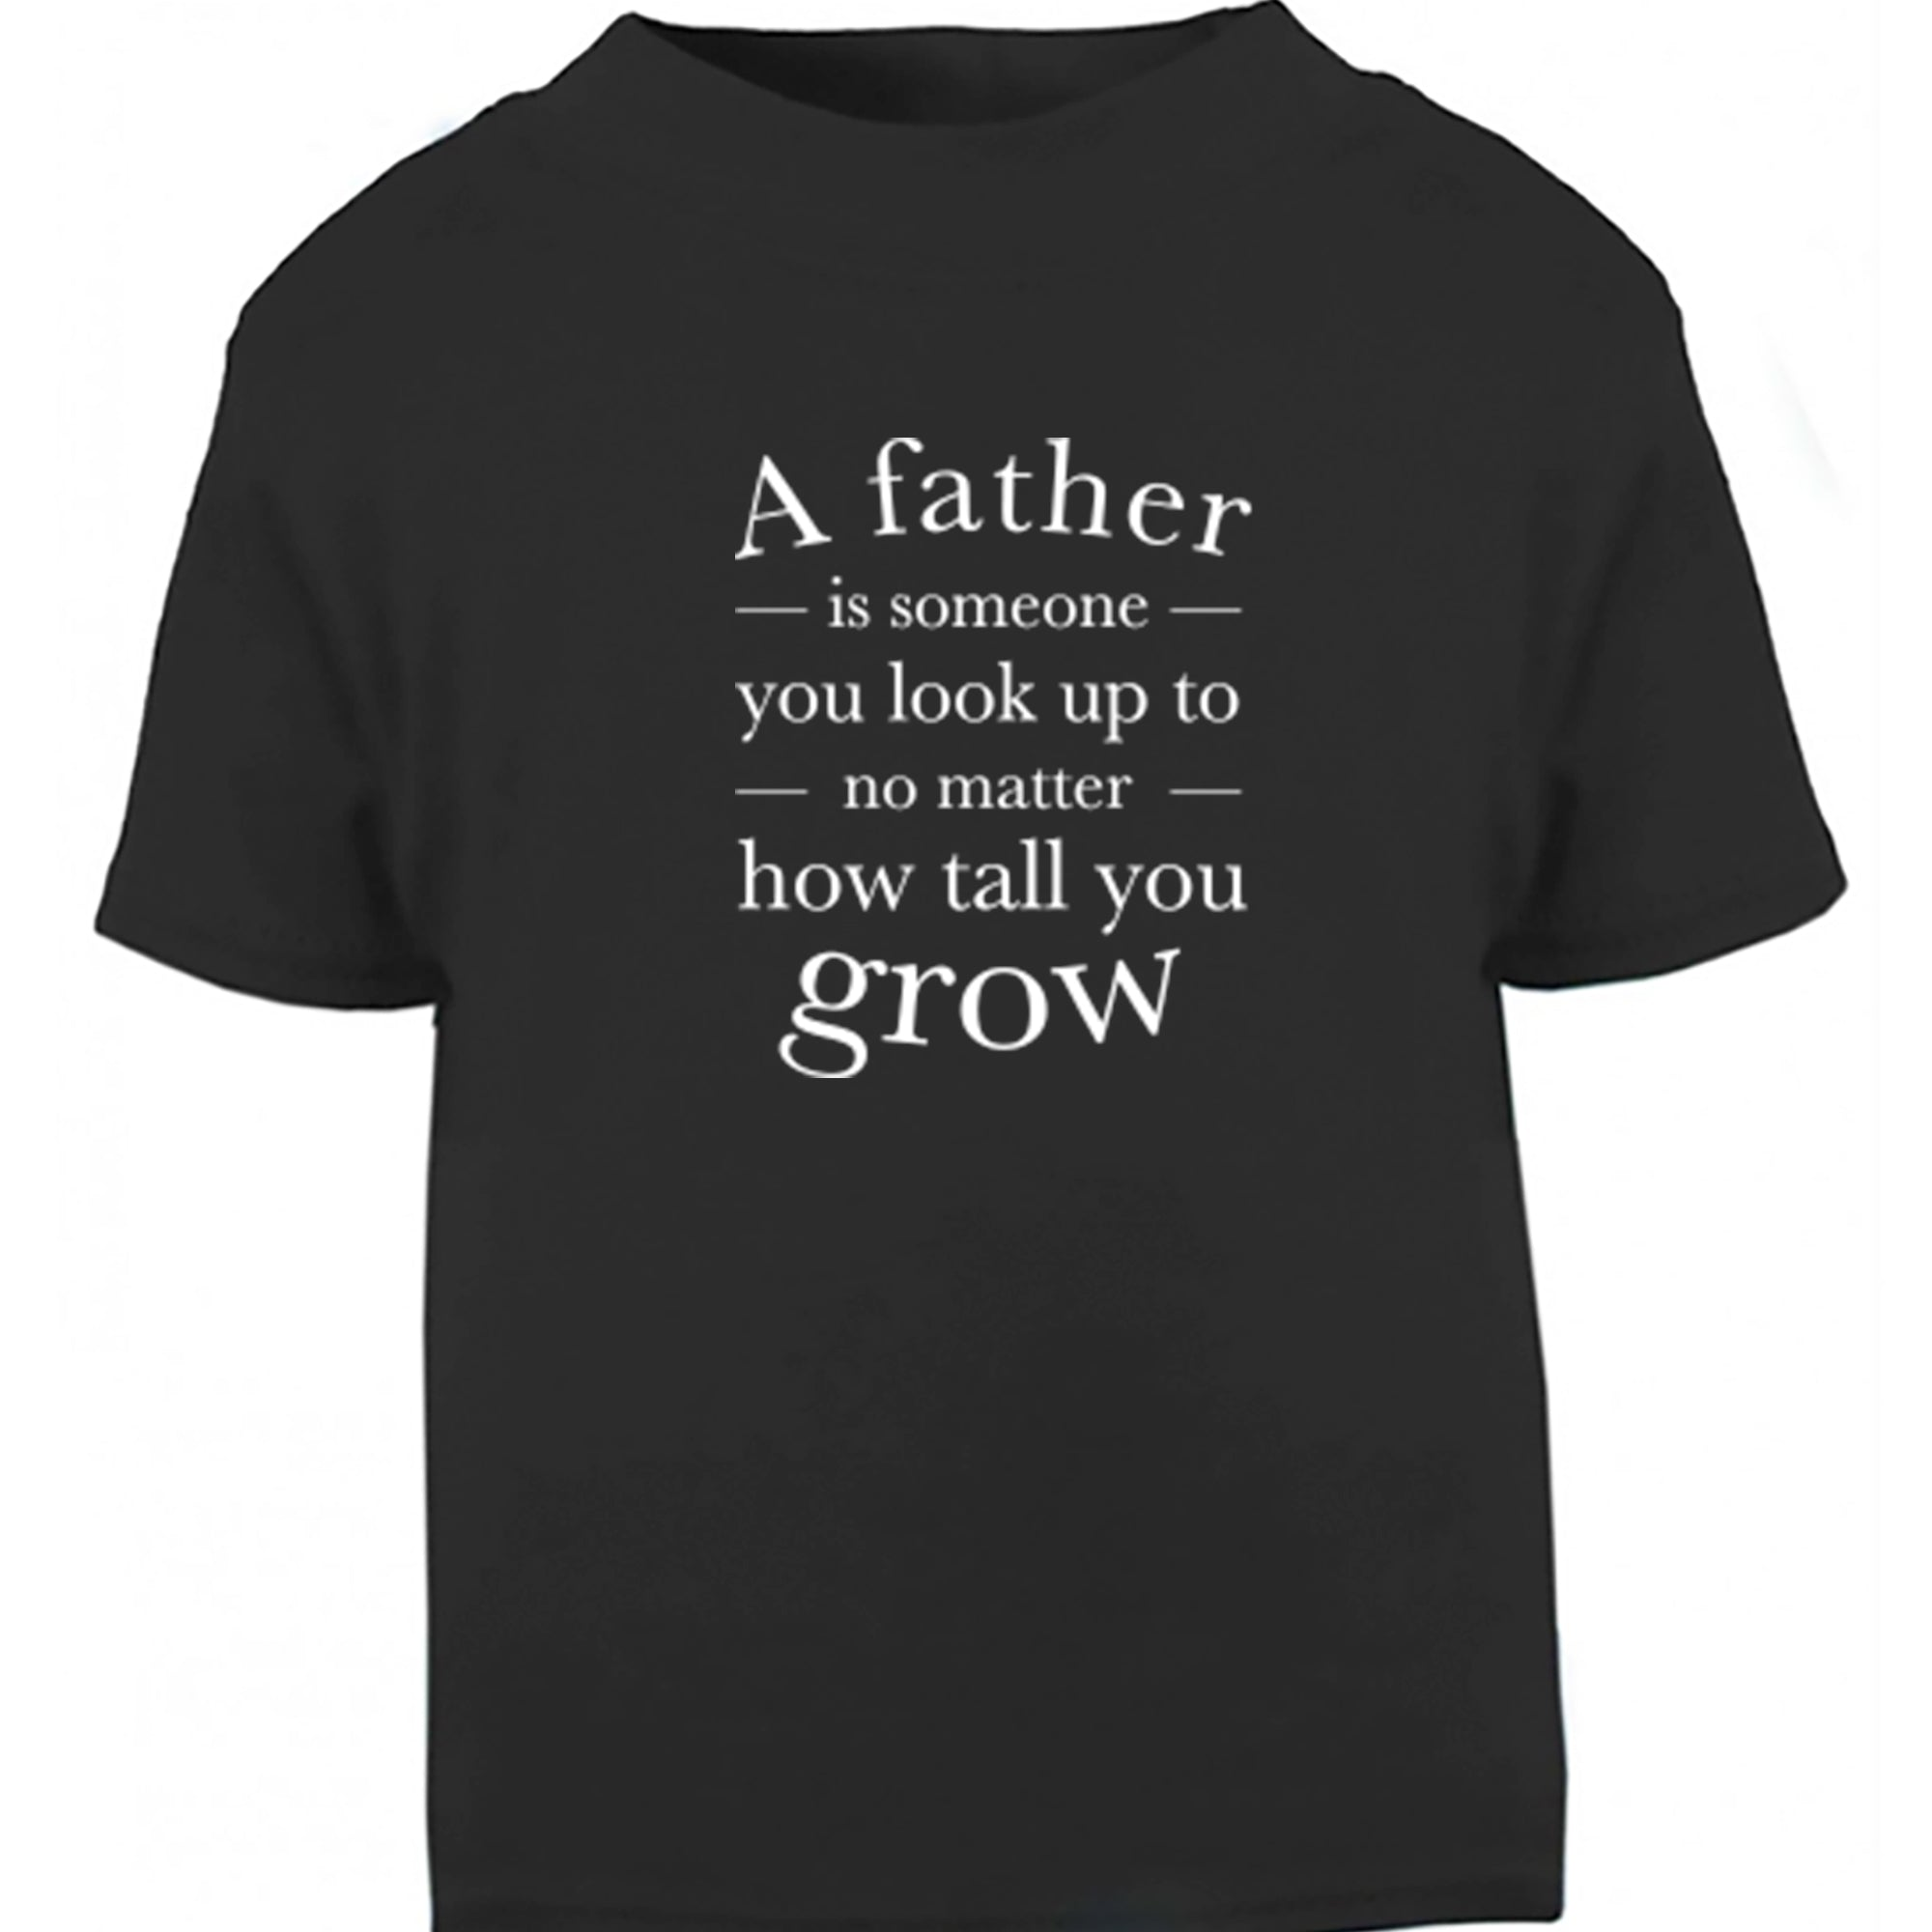 A Father Is Someone You look Up To No Matter How Tall You Grow Childrens Ages 3/4-12/14 Unisex Fit T-Shirt S0719